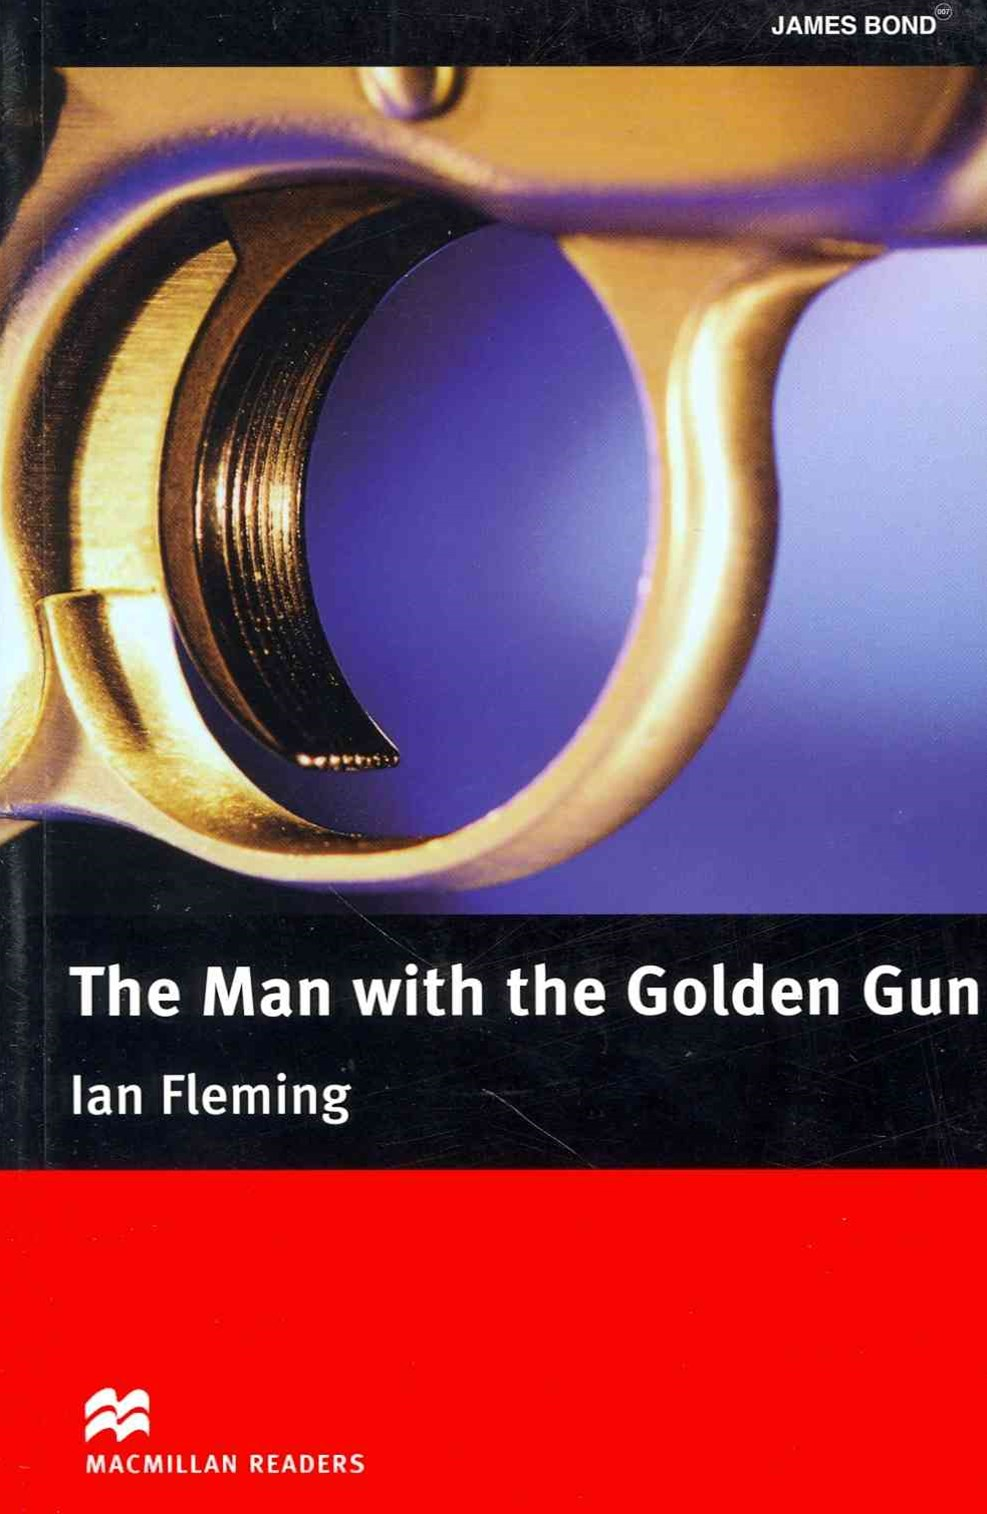 Macmillan Readers: The Man with the Golden Gun without CD Upper Intermediate Level